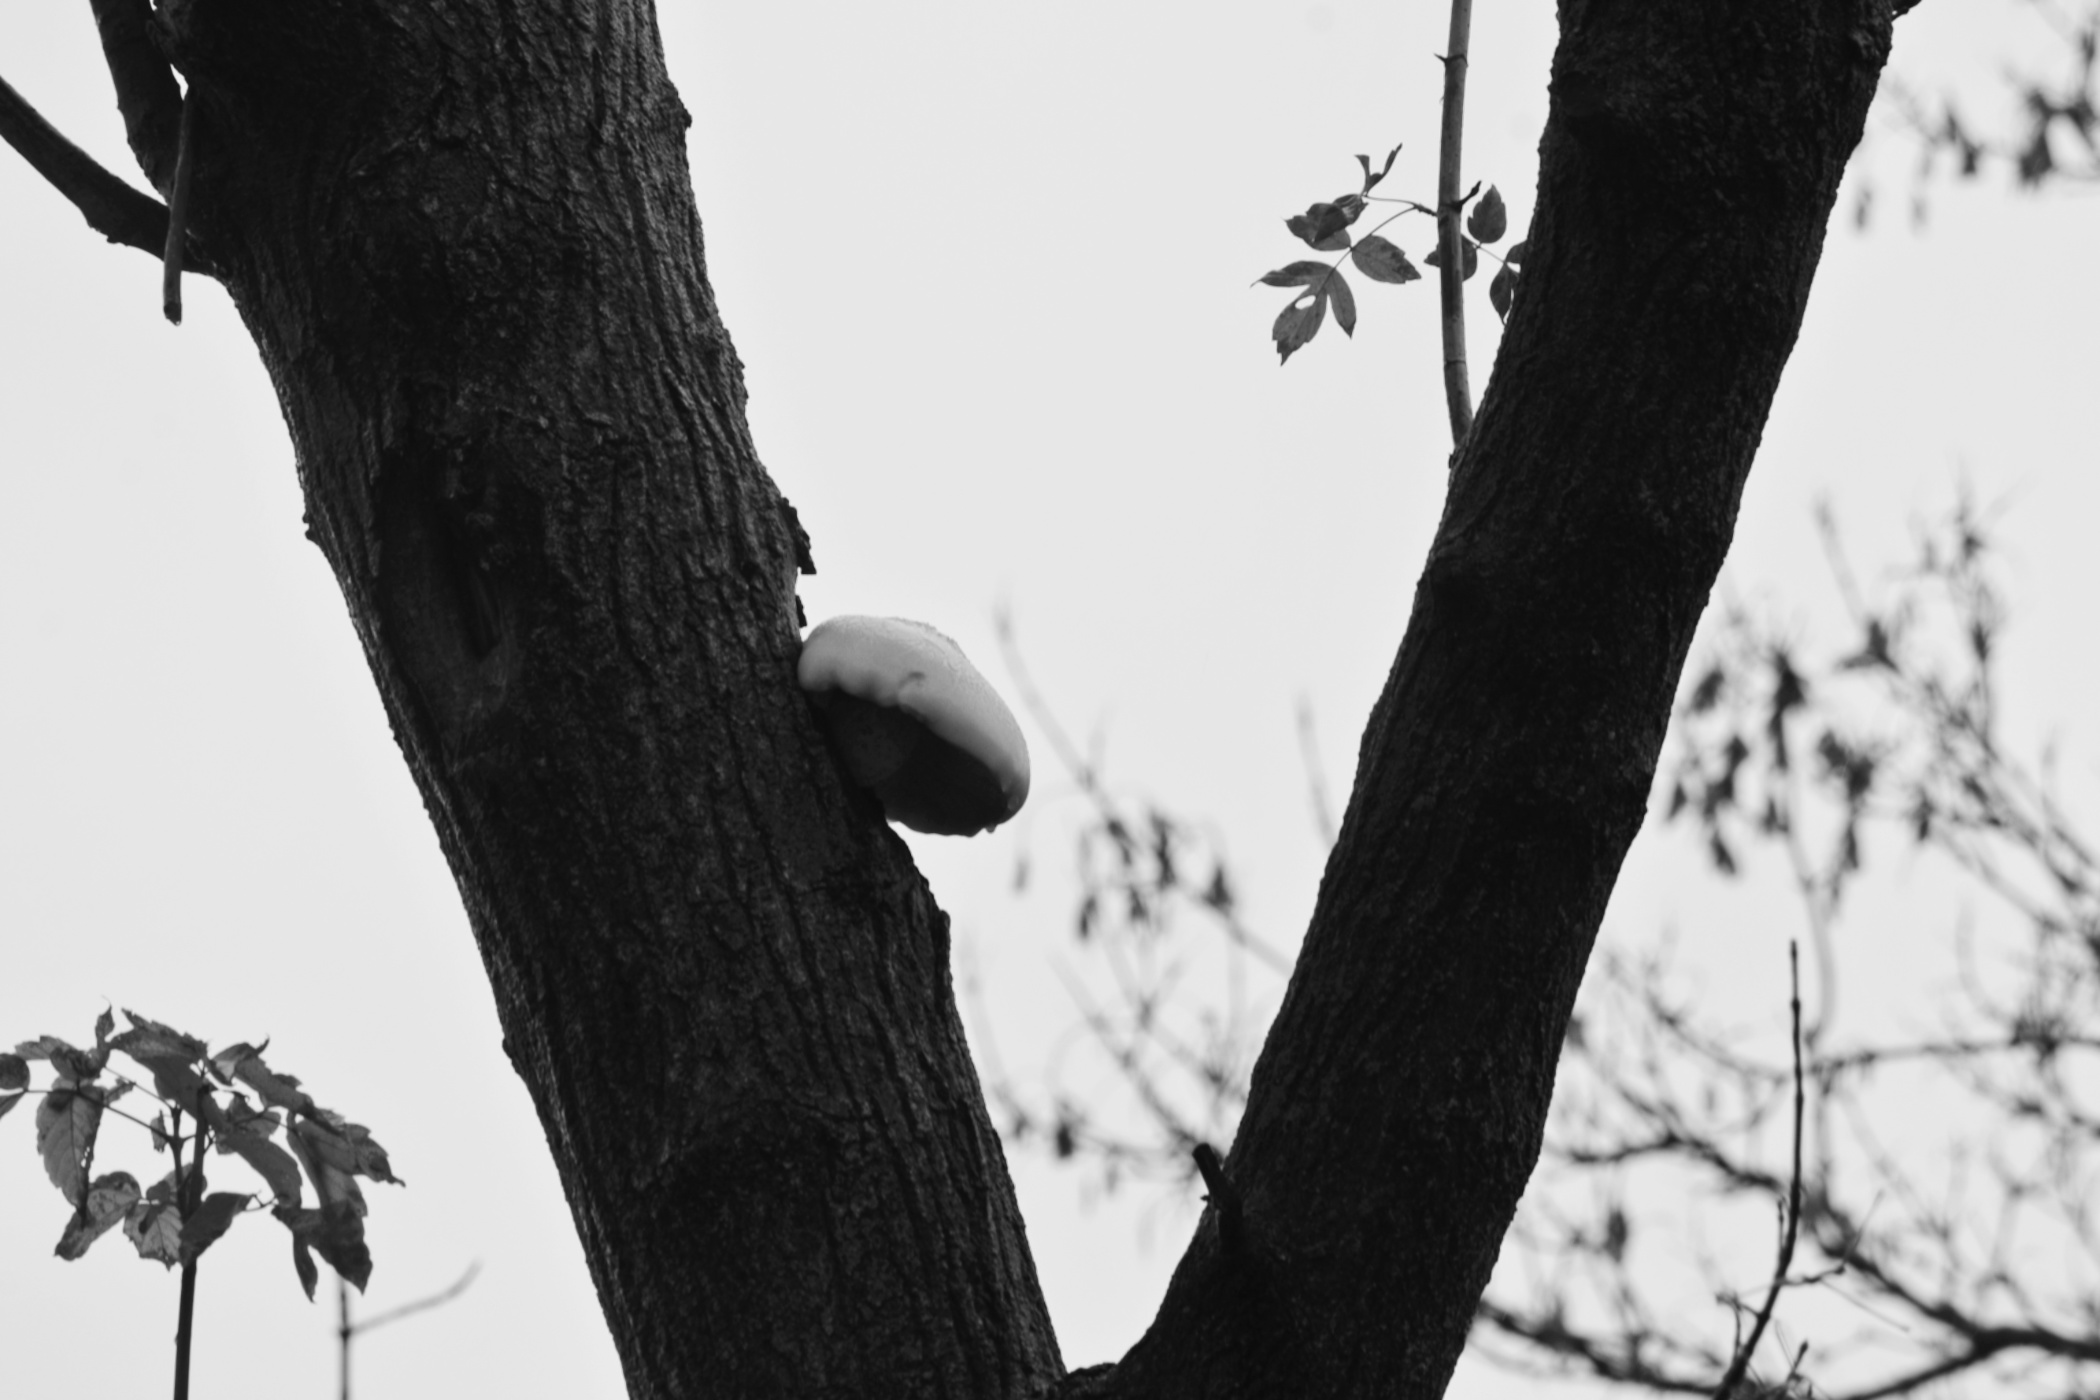 mushroom growing on a tree - the temenosjournal.com